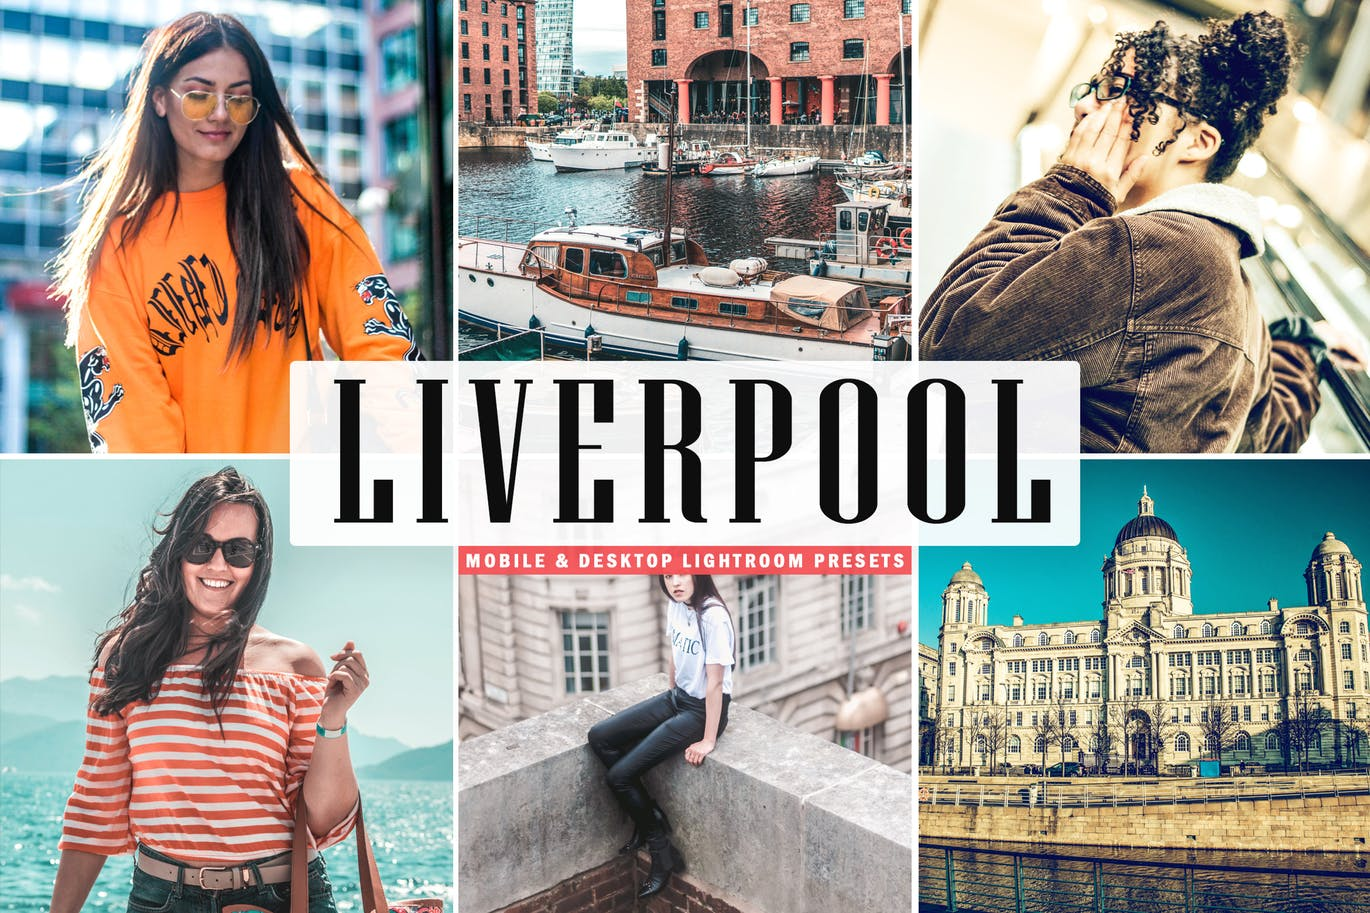 Liverpool Mobile & Desktop Lightroom Presets